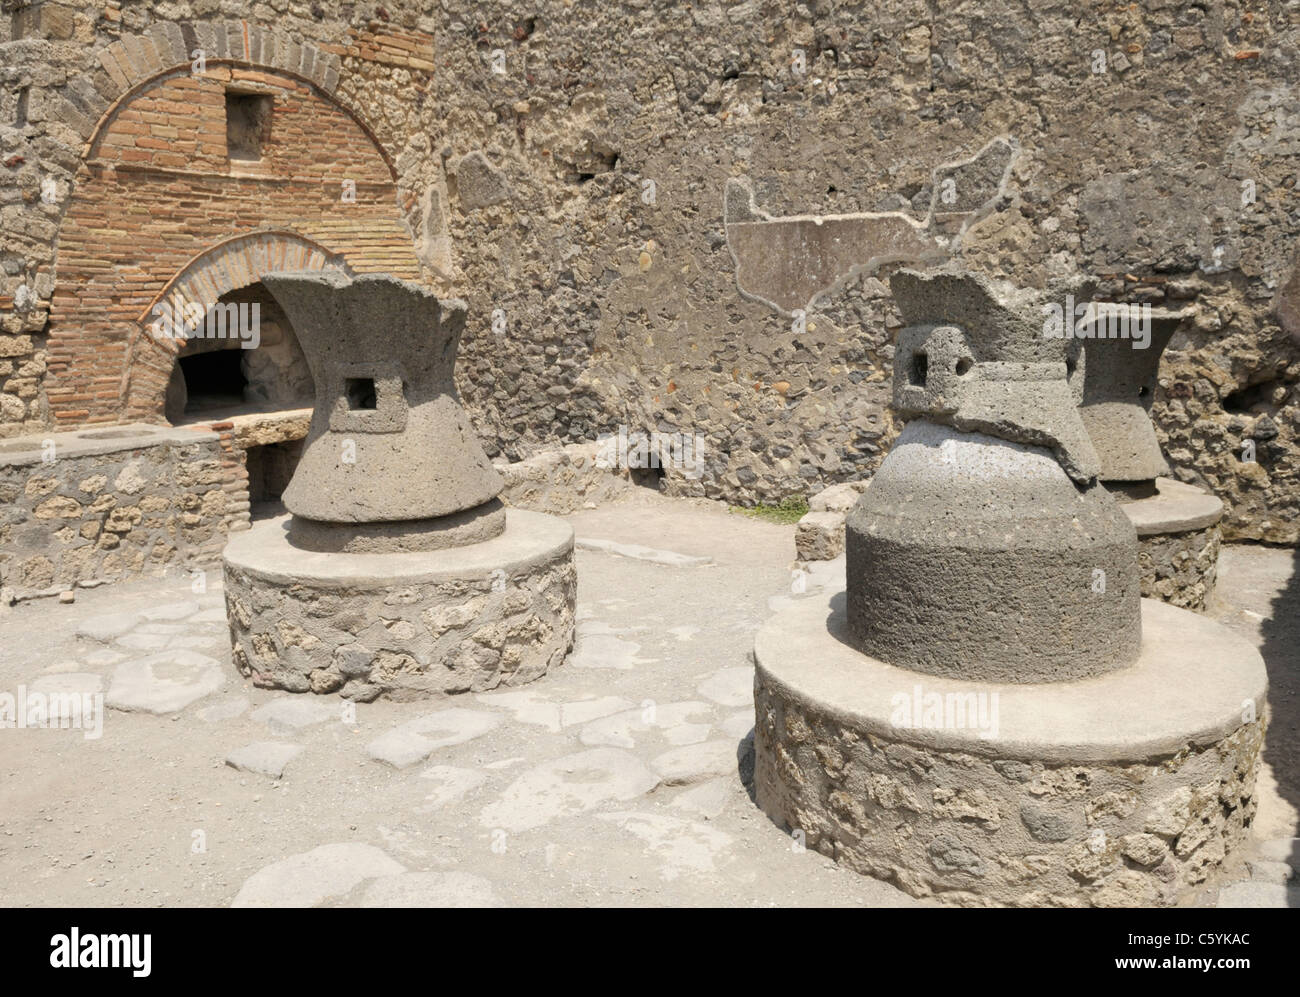 Bakery, Pompeii. In  foreground are millstones that were turned by mules. In back is the wood burning oven. - Stock Image